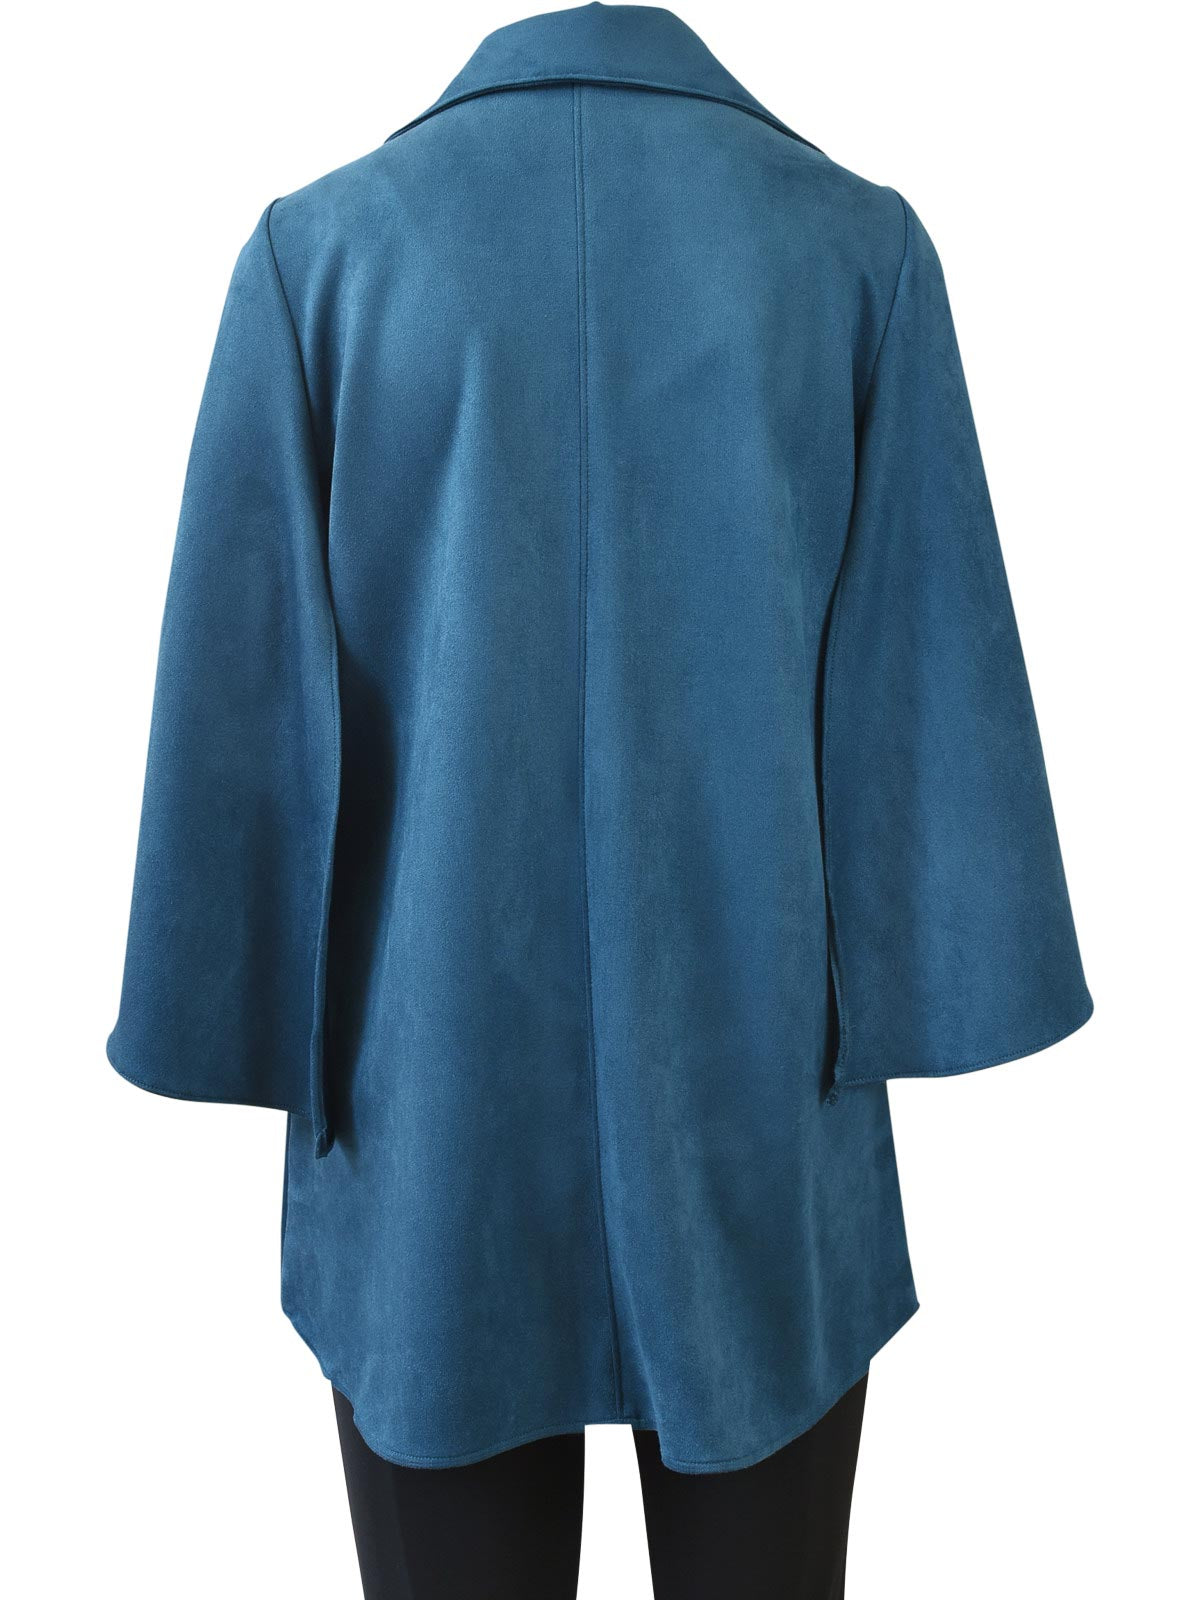 IC Collection Sueded Kimono Sleeve Jacket, Teal